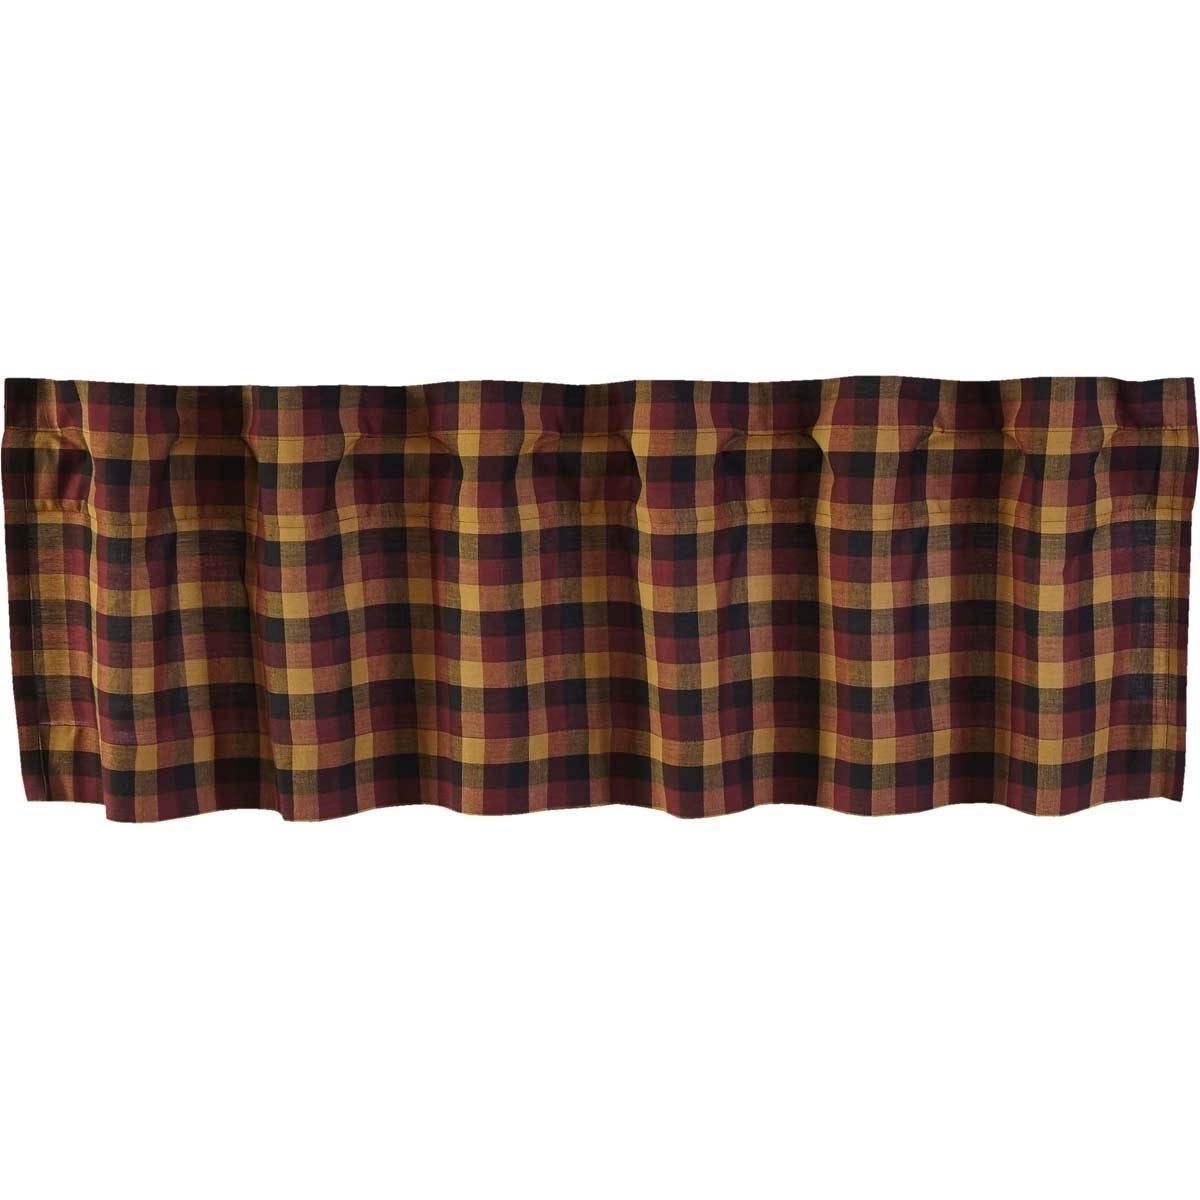 Red Primitive Kitchen Curtains Vhc Heritage Farms Valance Rod Pocket Cotton  Plaid – 16X72 Intended For Well Liked Red Primitive Kitchen Curtains (Gallery 13 of 20)